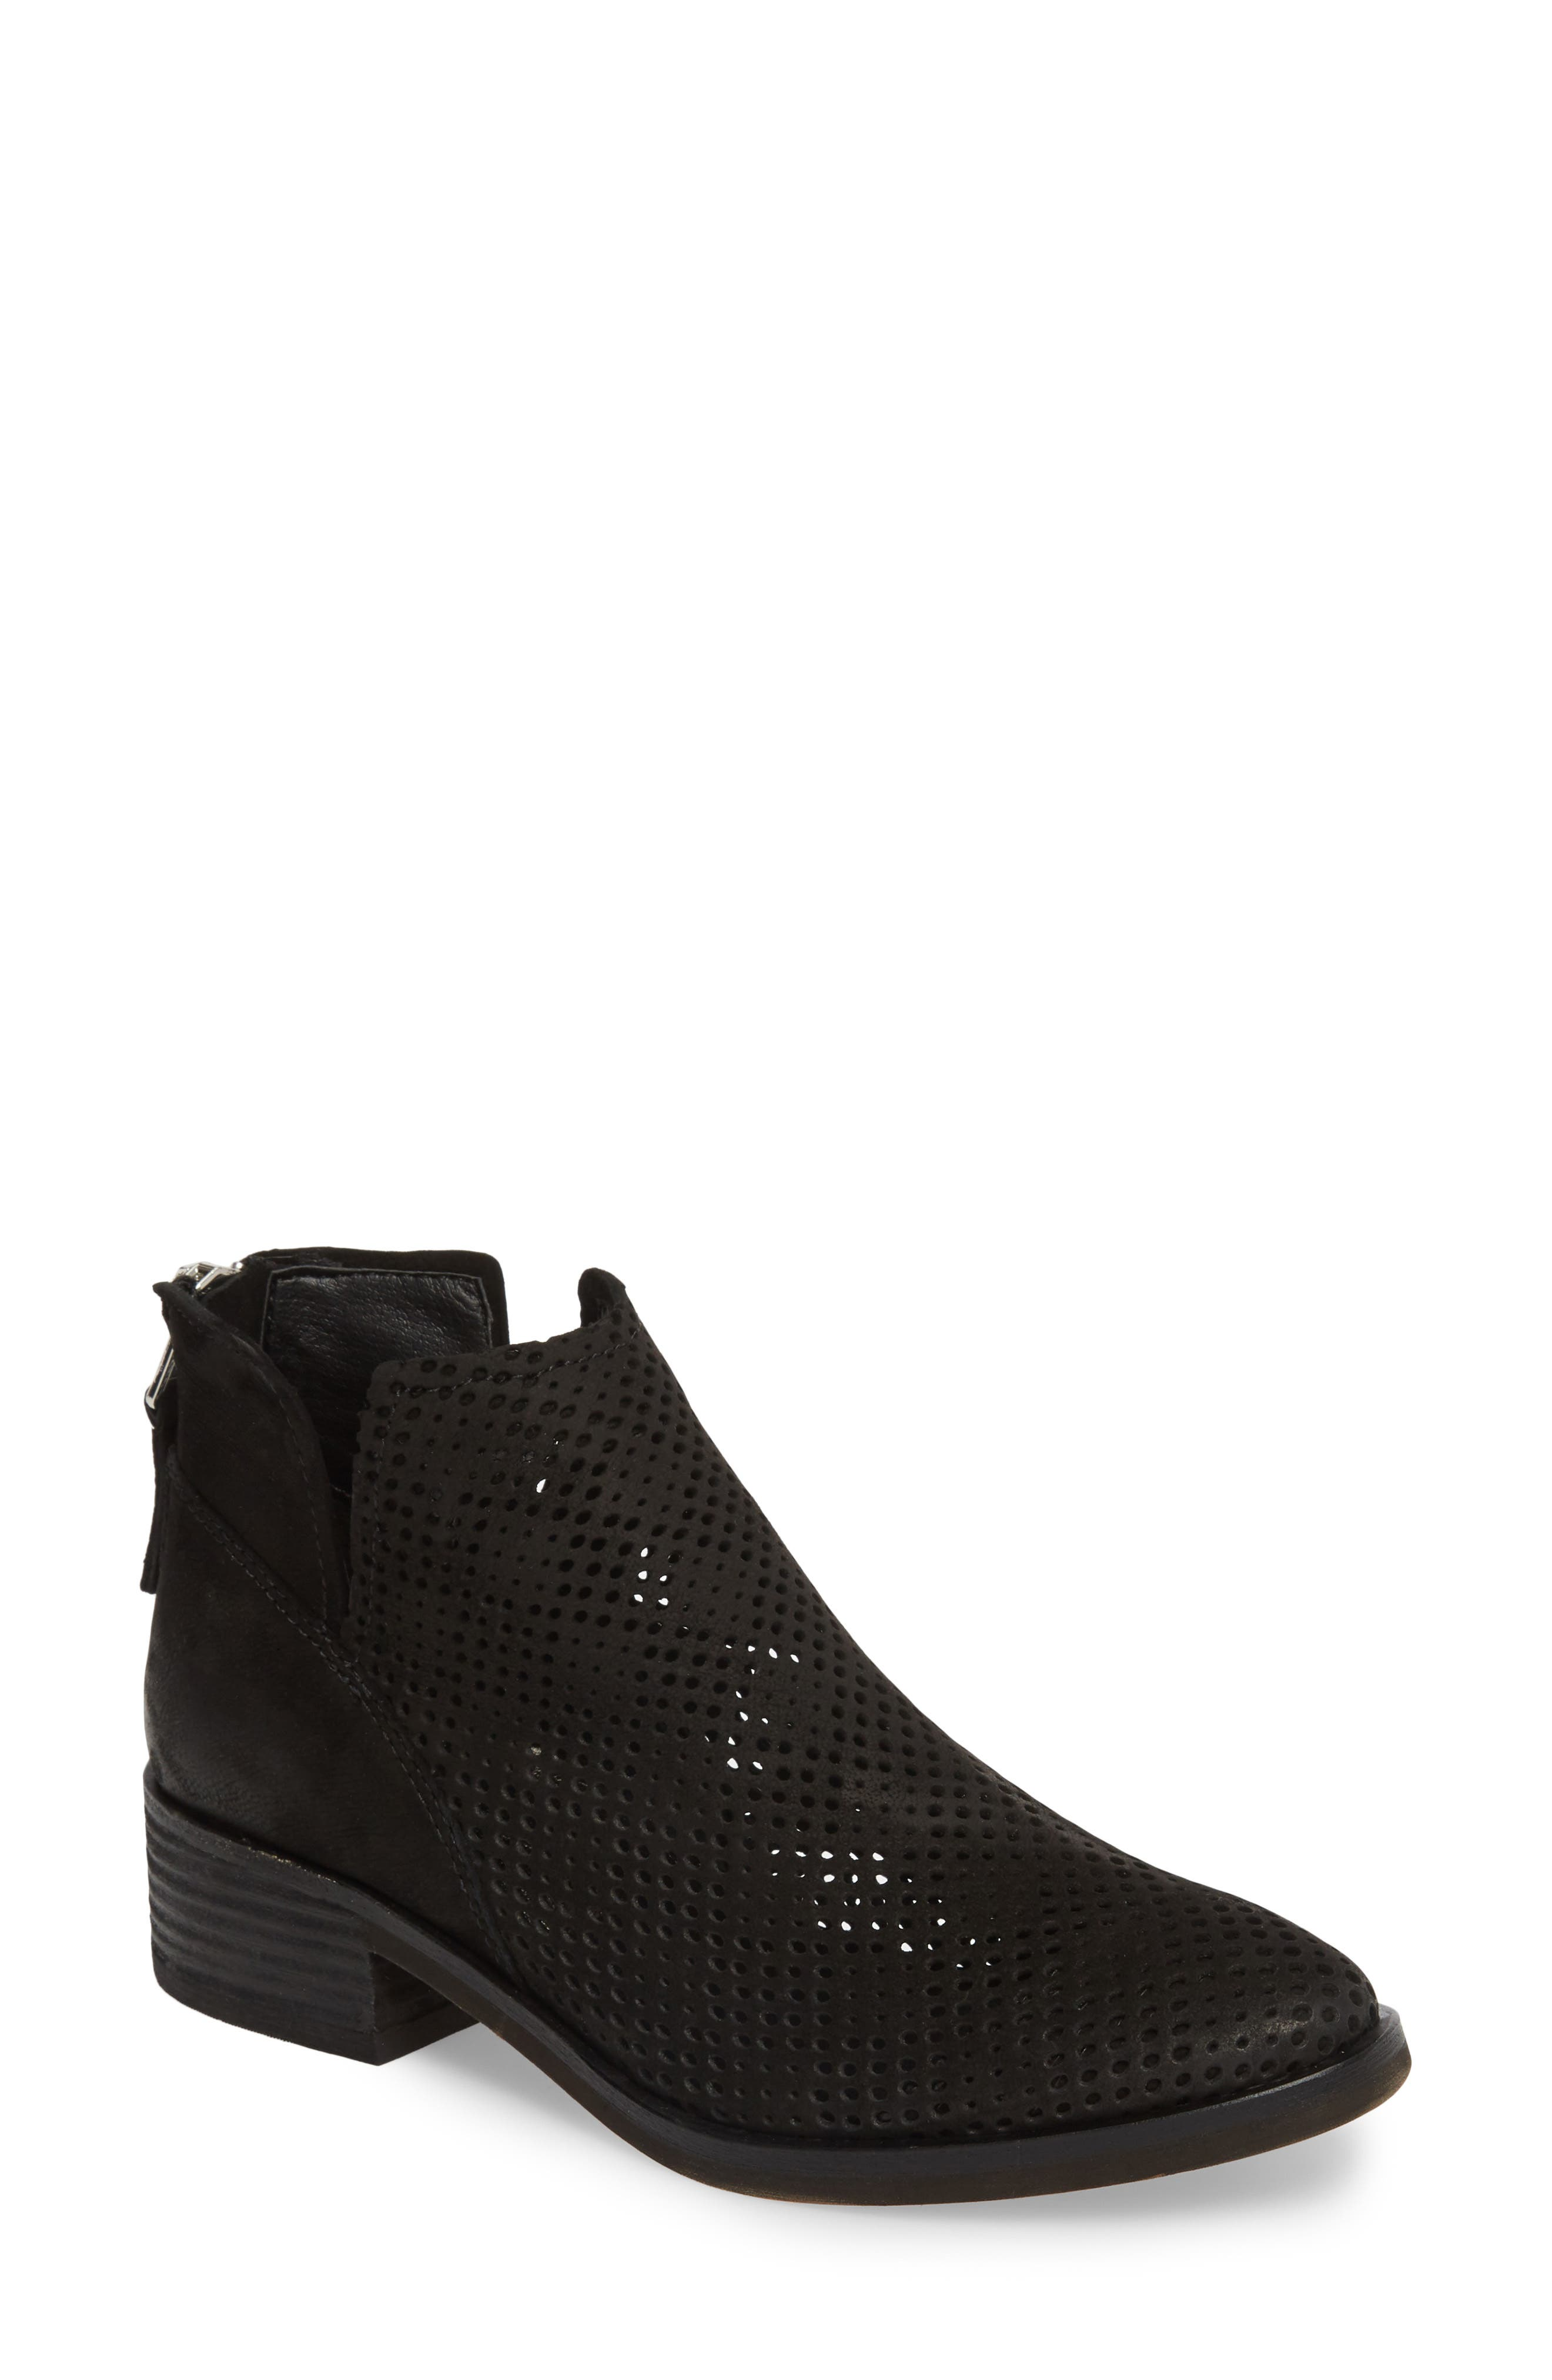 Dolce Vita Tommi Perforated Bootie, Black